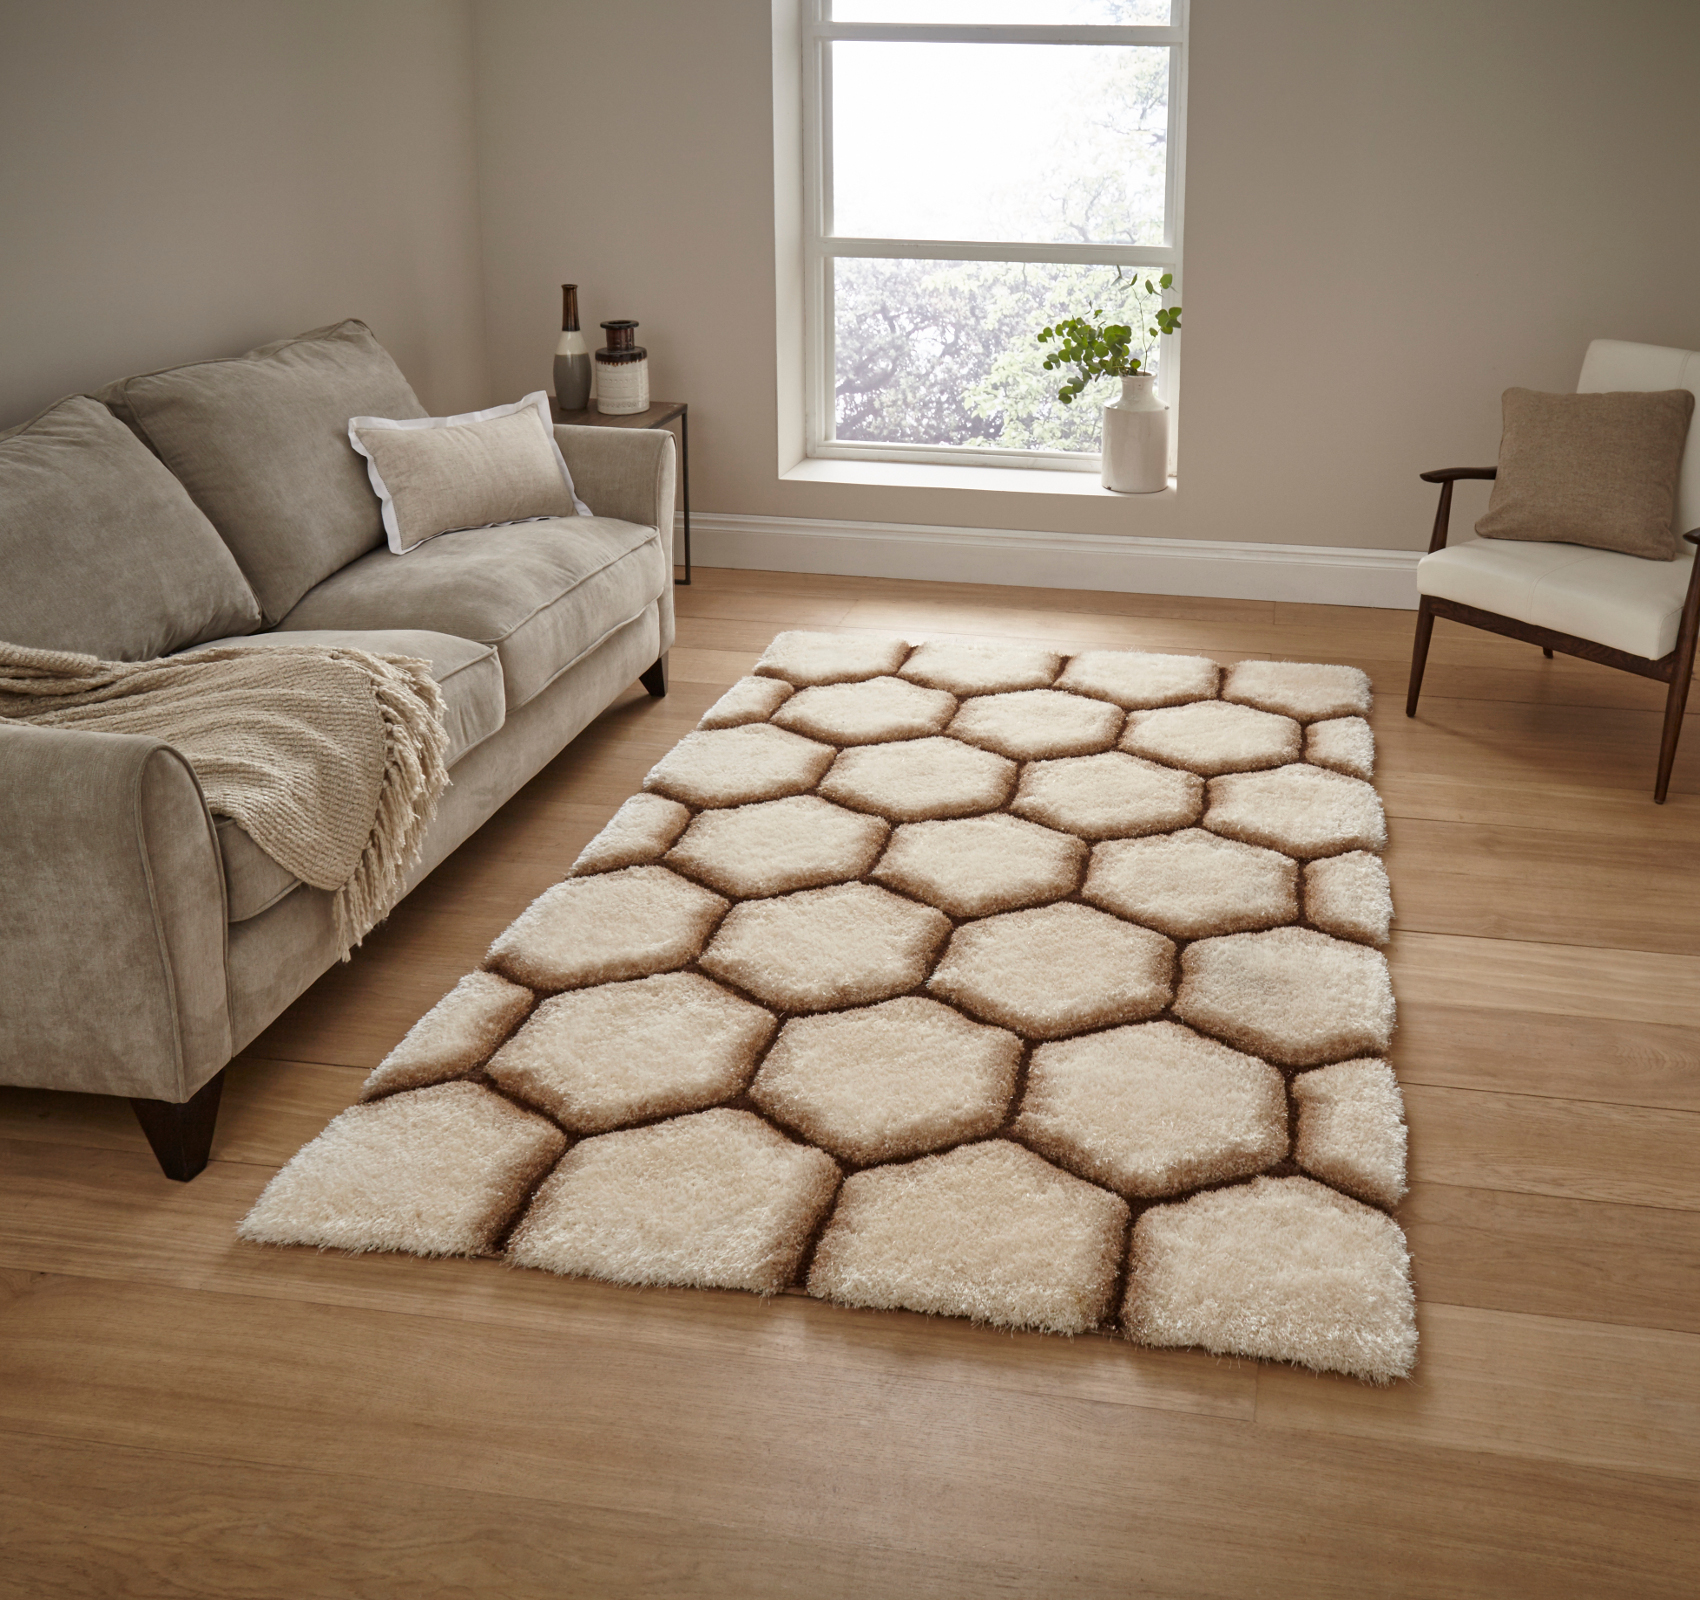 Cream Brown Hexagon Rug Super Soft Gy Pile Le House Honeycomb Floor Mat